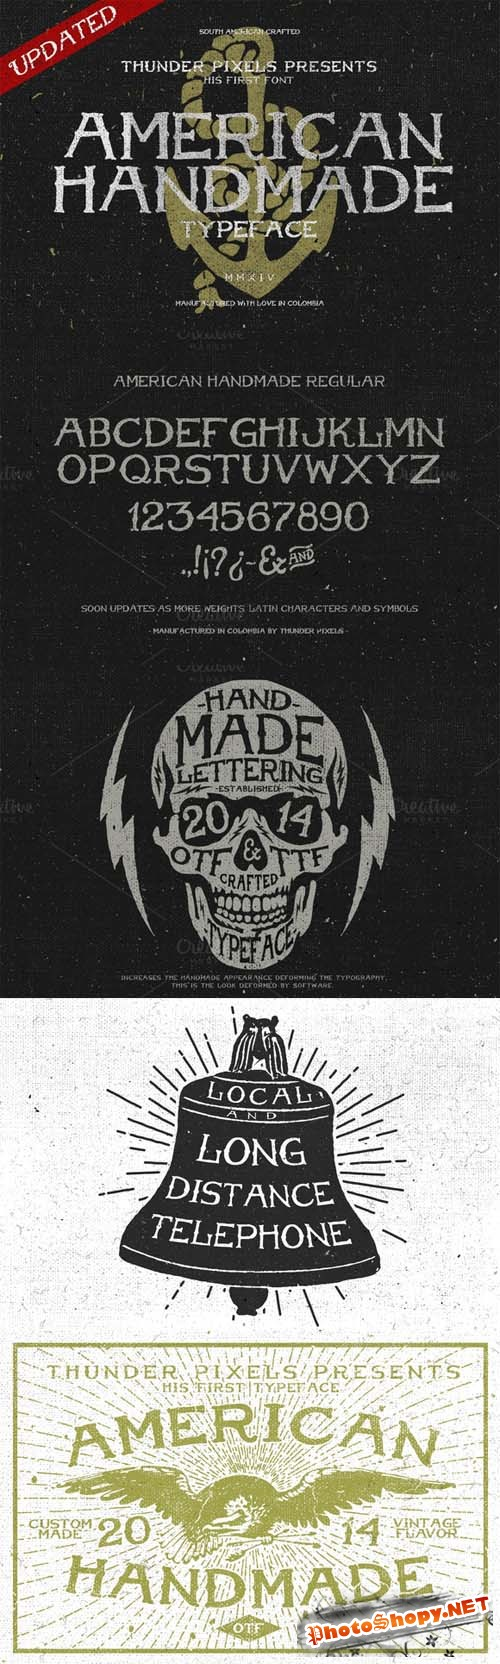 American Handmade Typeface Font